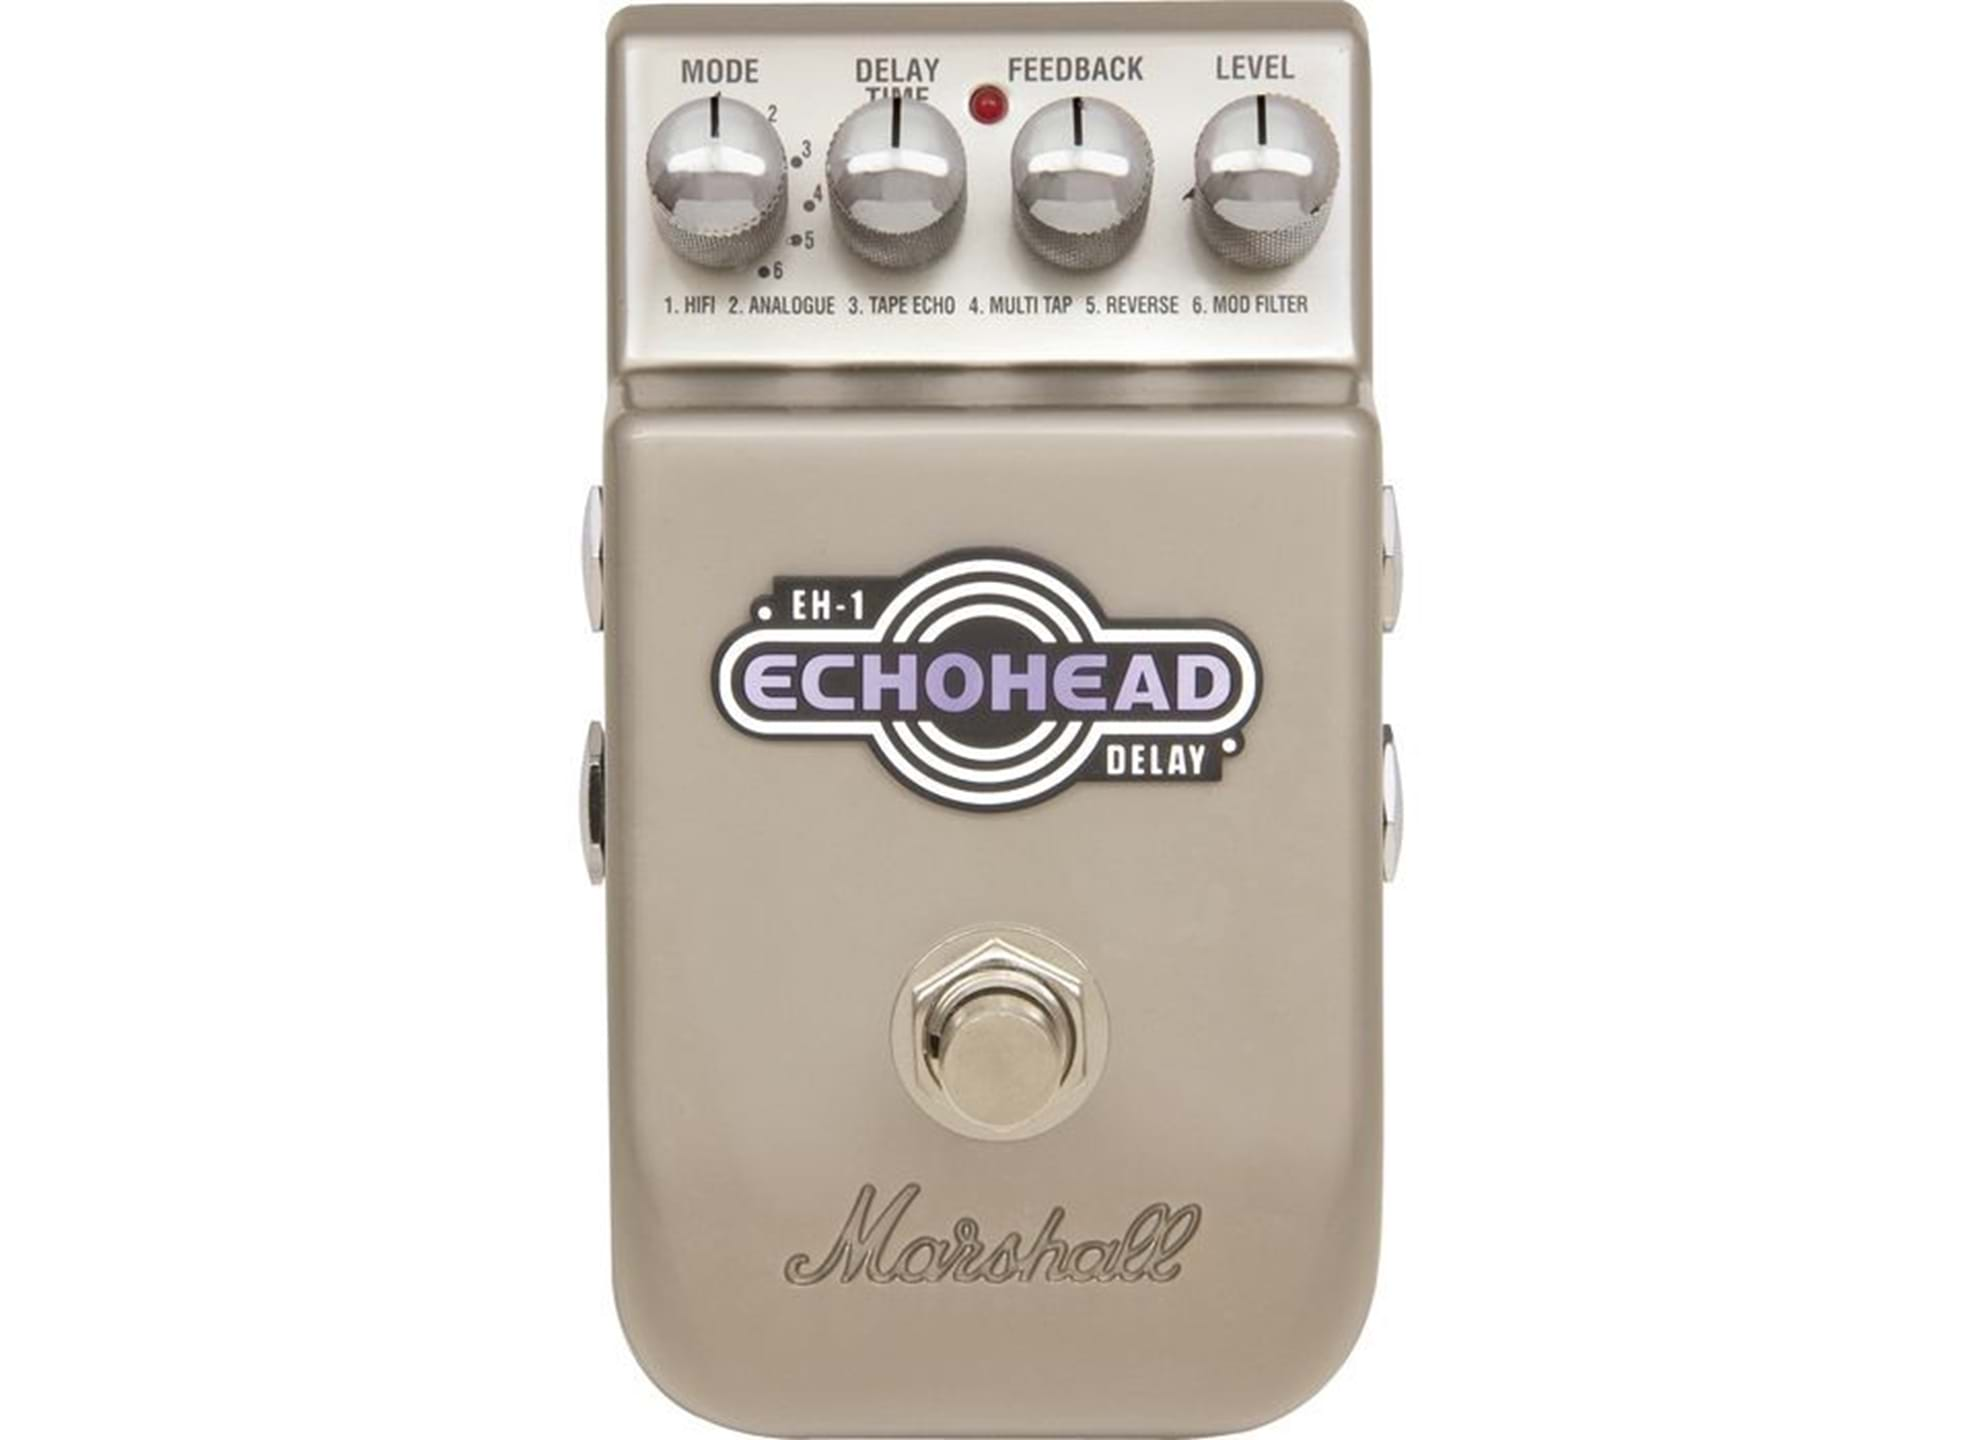 EH-1 The Echohead